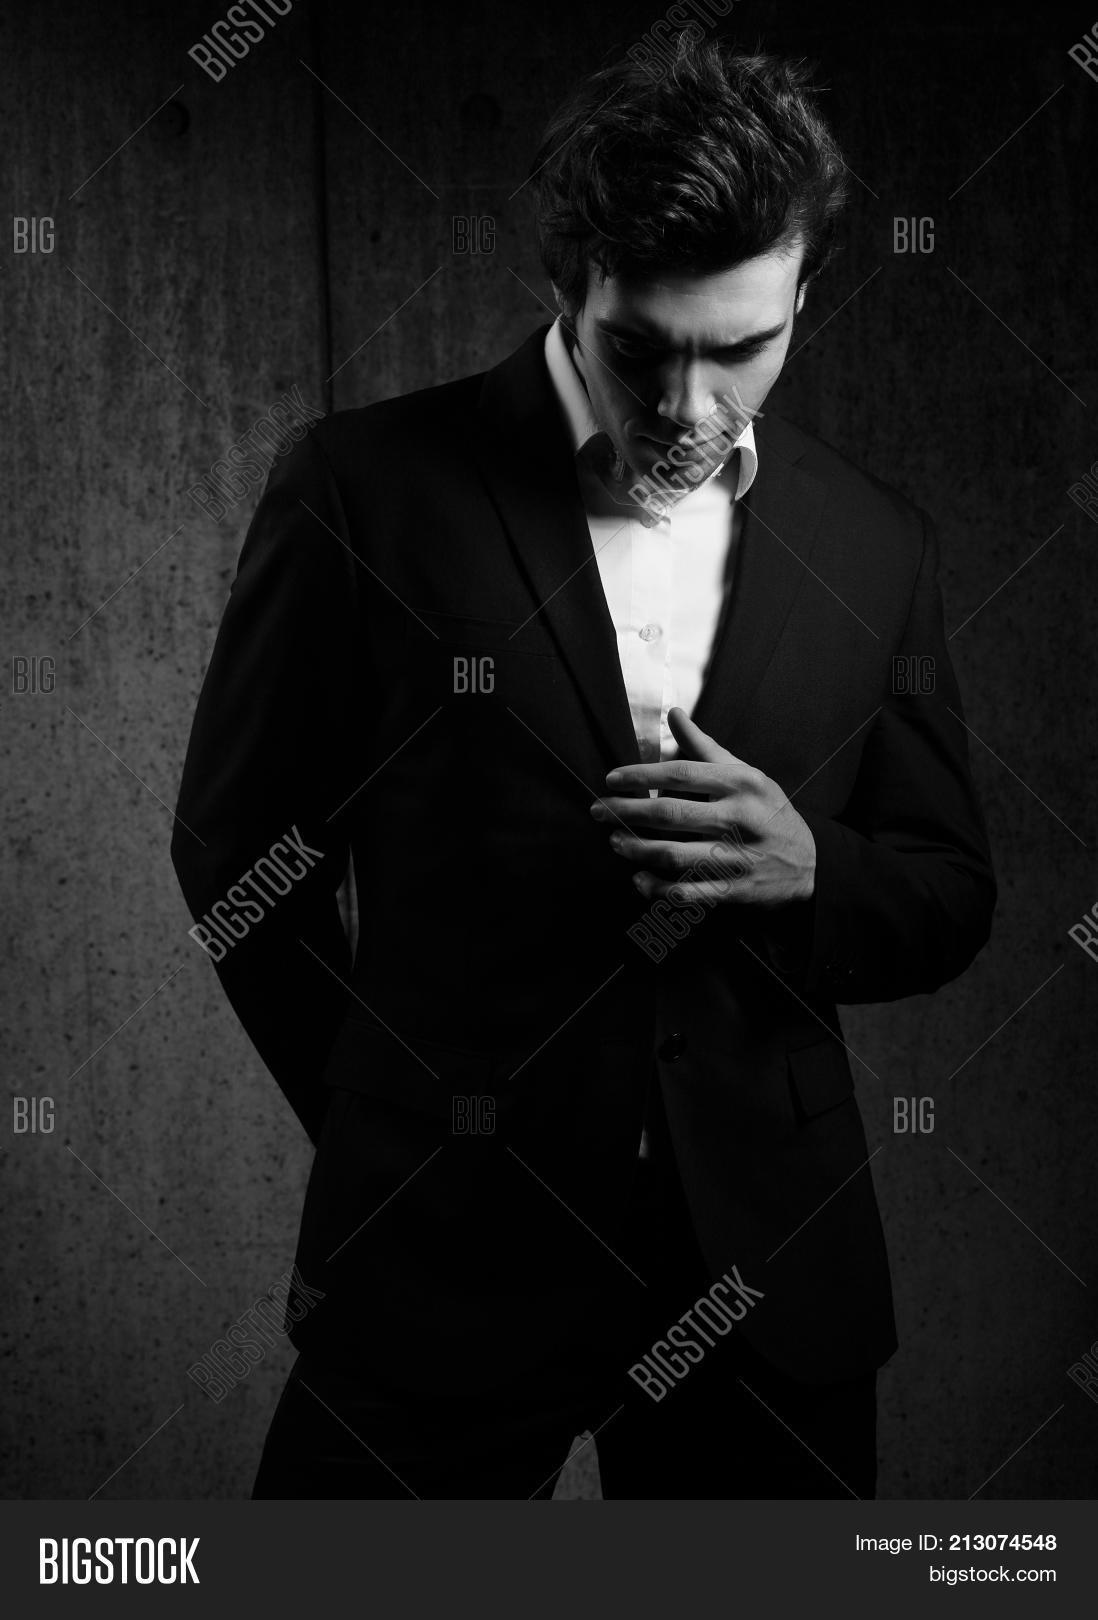 1f6d014b Handsome male model posing and looking down in fashion suit and white style  shirt on dark shadow background. Portrait. Black and white